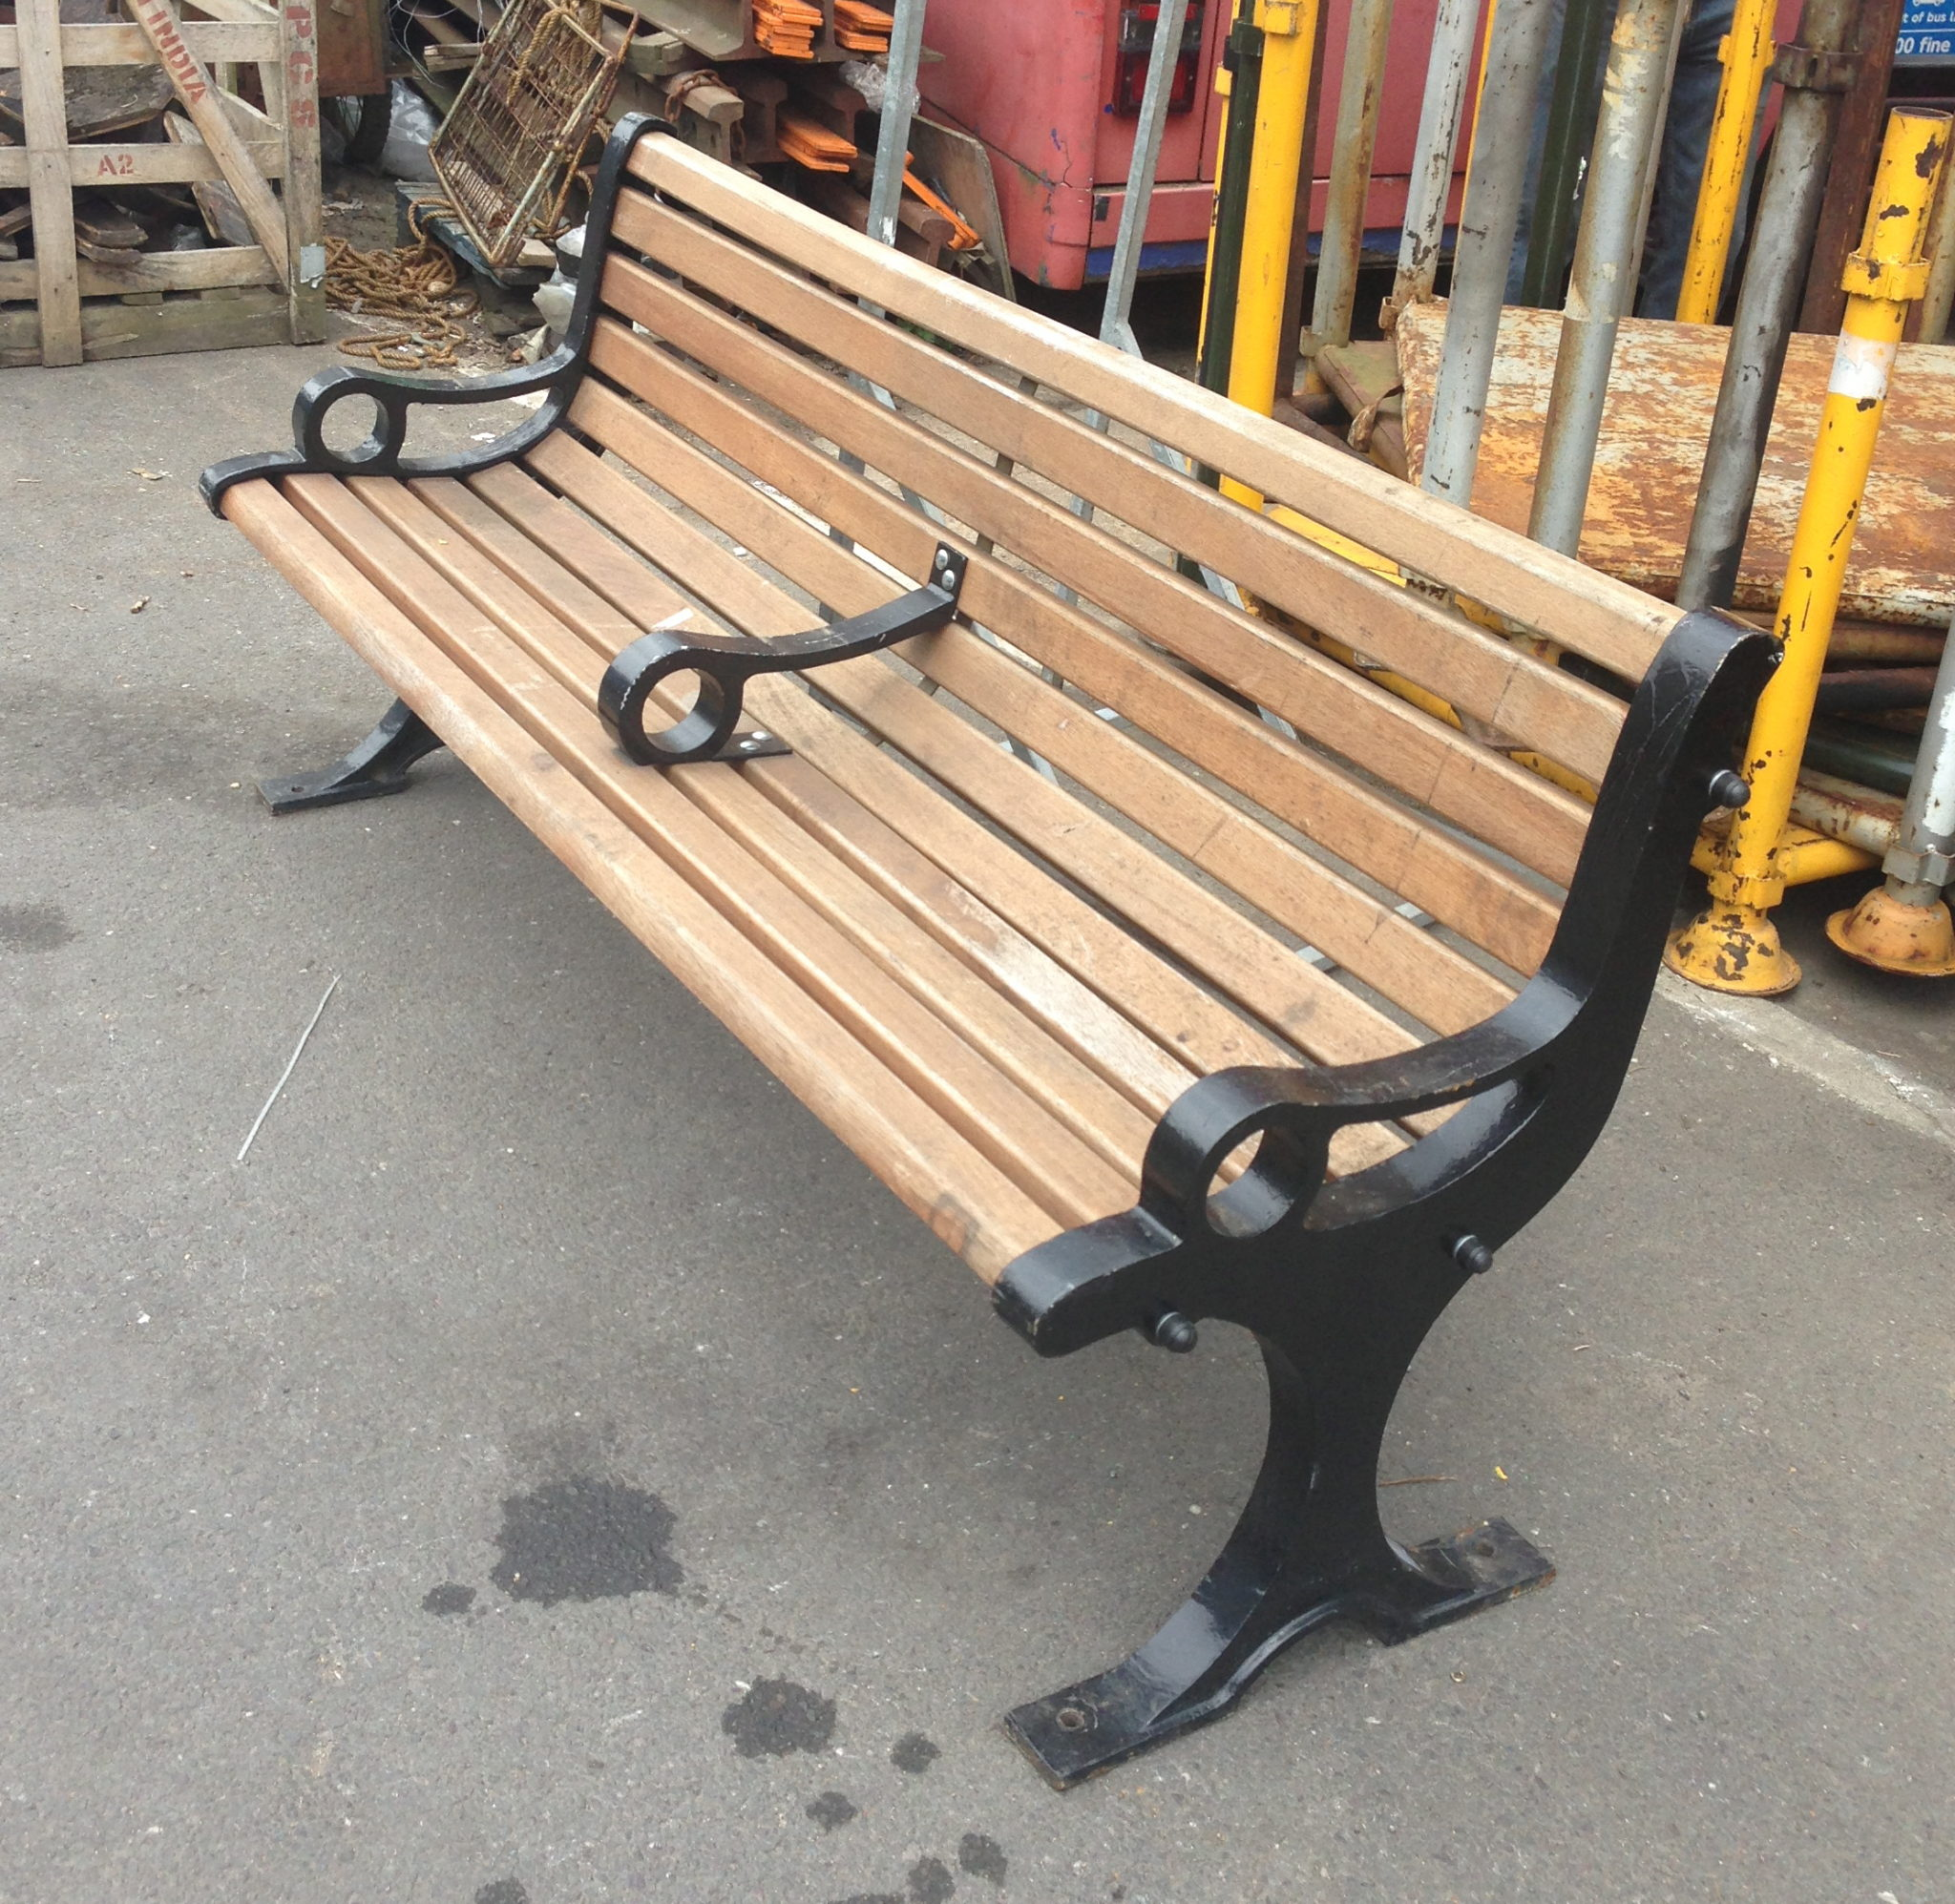 Slatted Bench With Ring Arms - IMG_4548